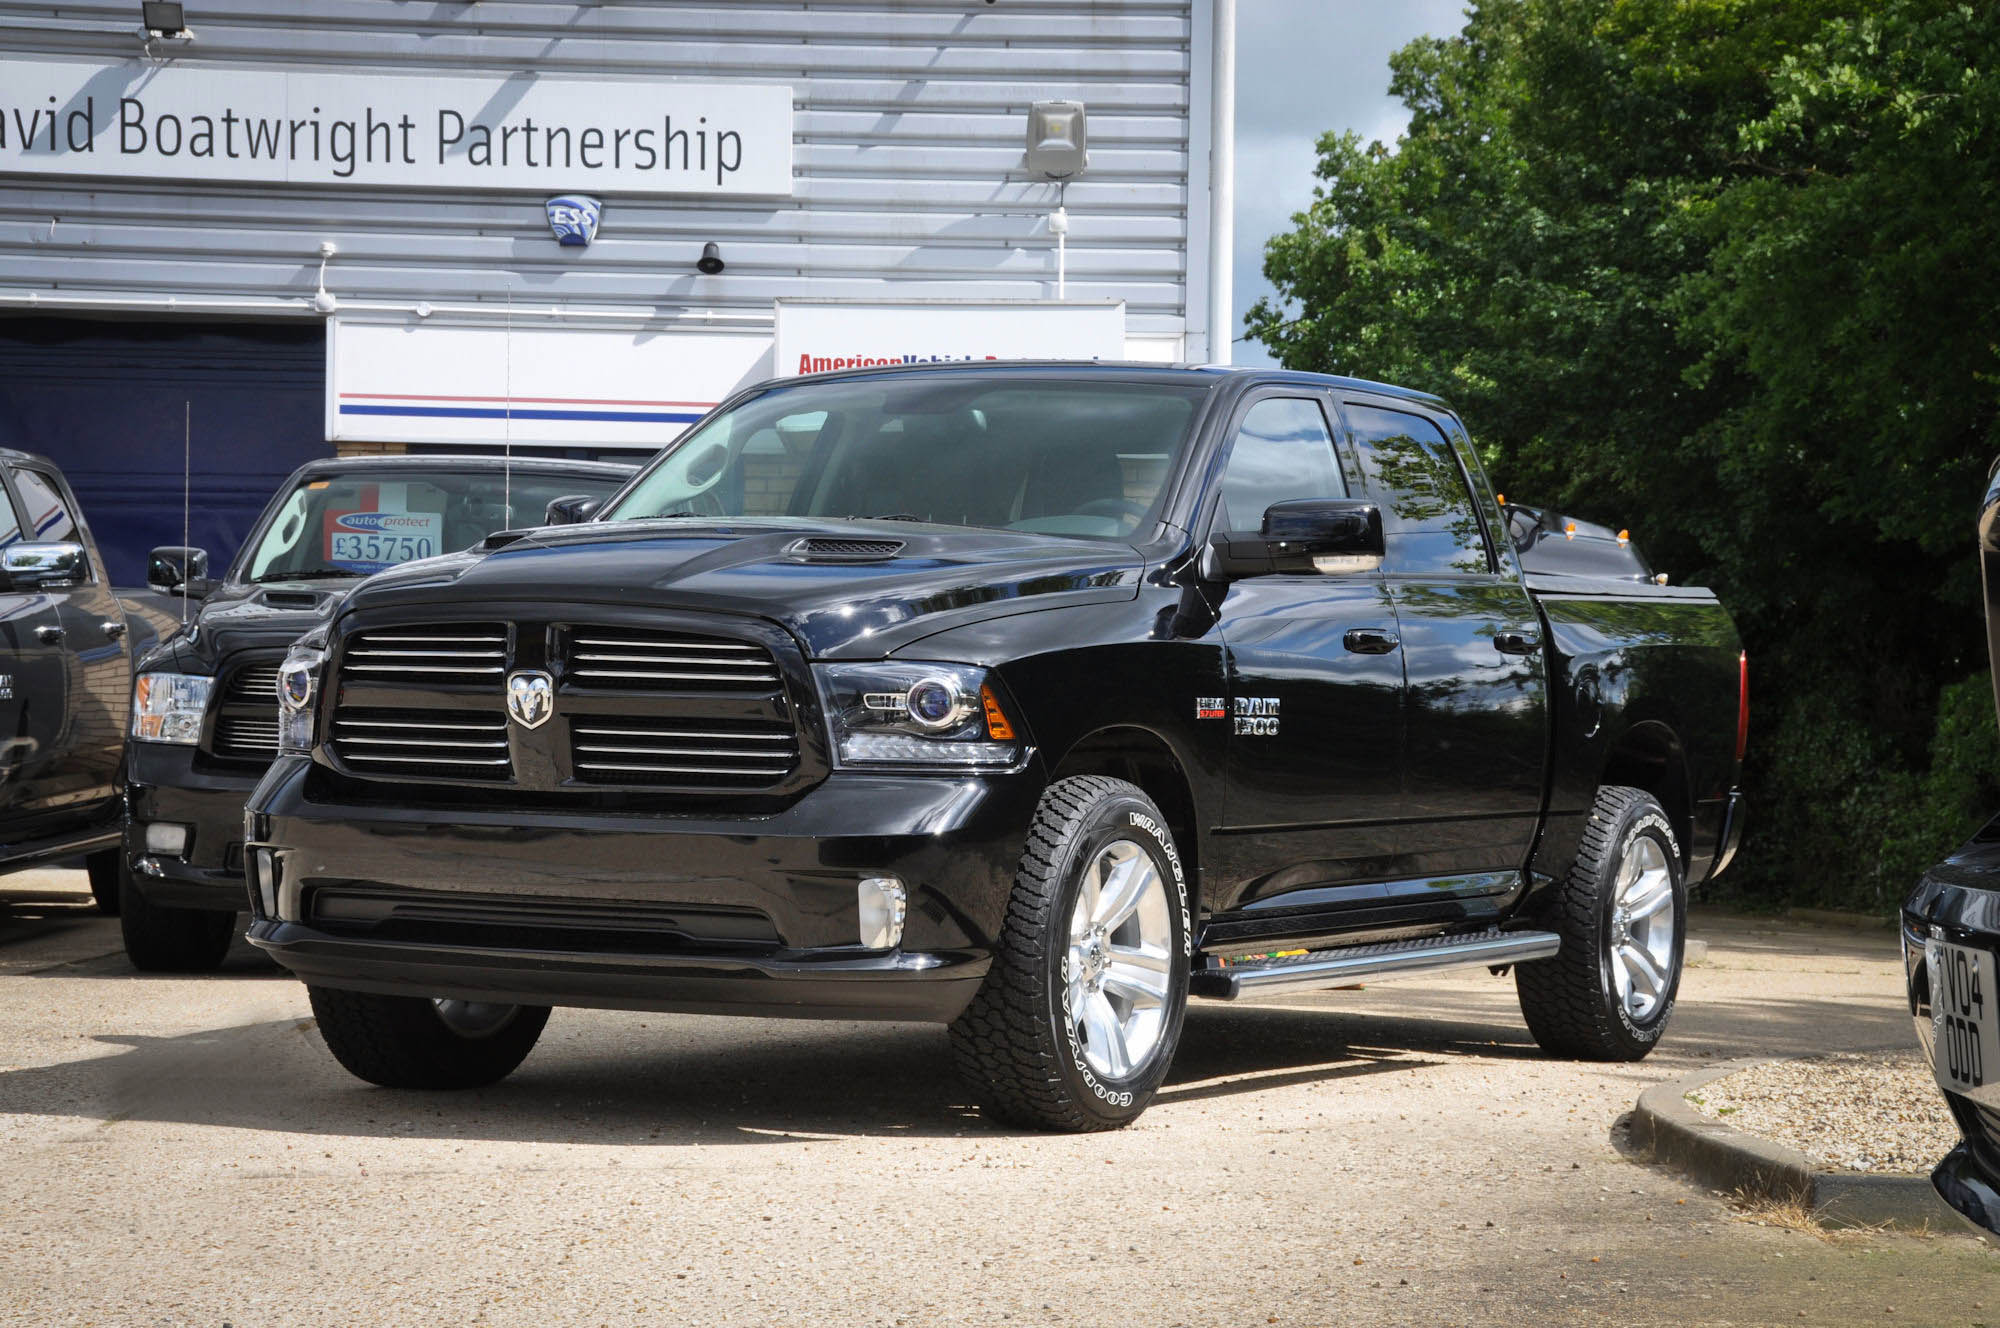 New 2013 Dodge Ram Crew Sport Fully Loaded With Options